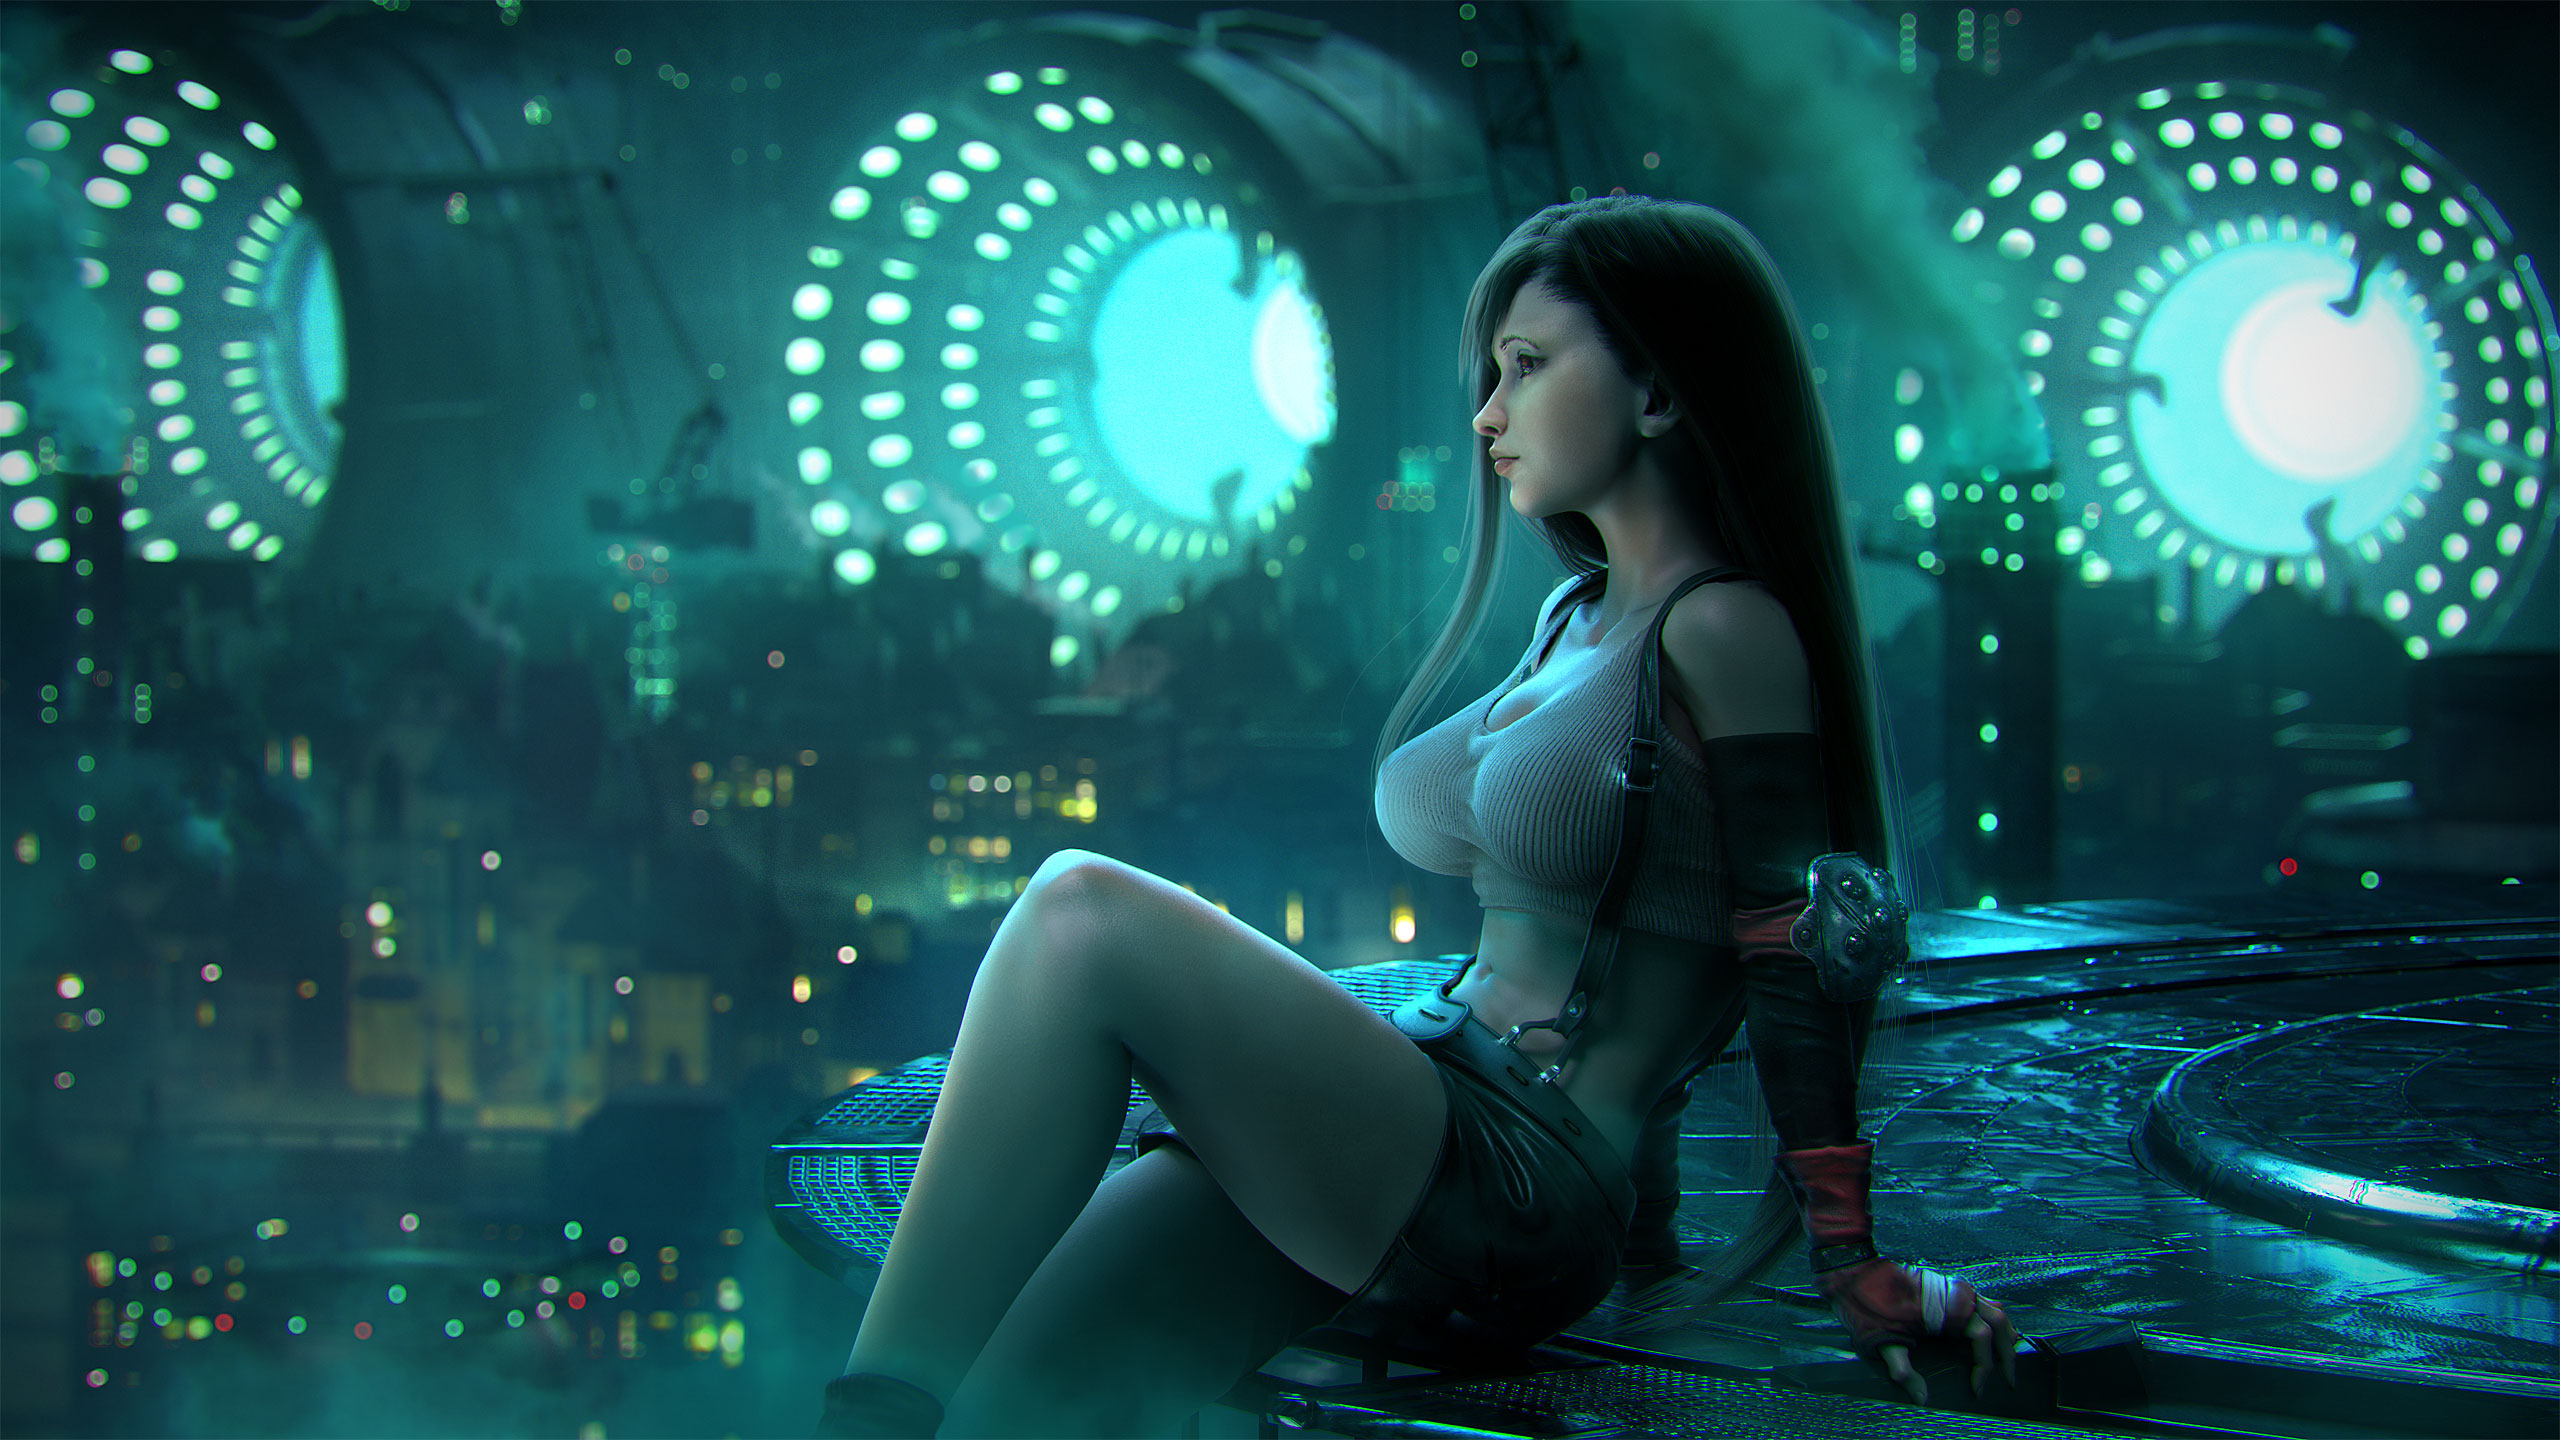 4k Final Fantasy Xv Hd Games 4k Wallpapers Images: Tifa Lockhart Final Fantasy Artwork, HD Fantasy Girls, 4k